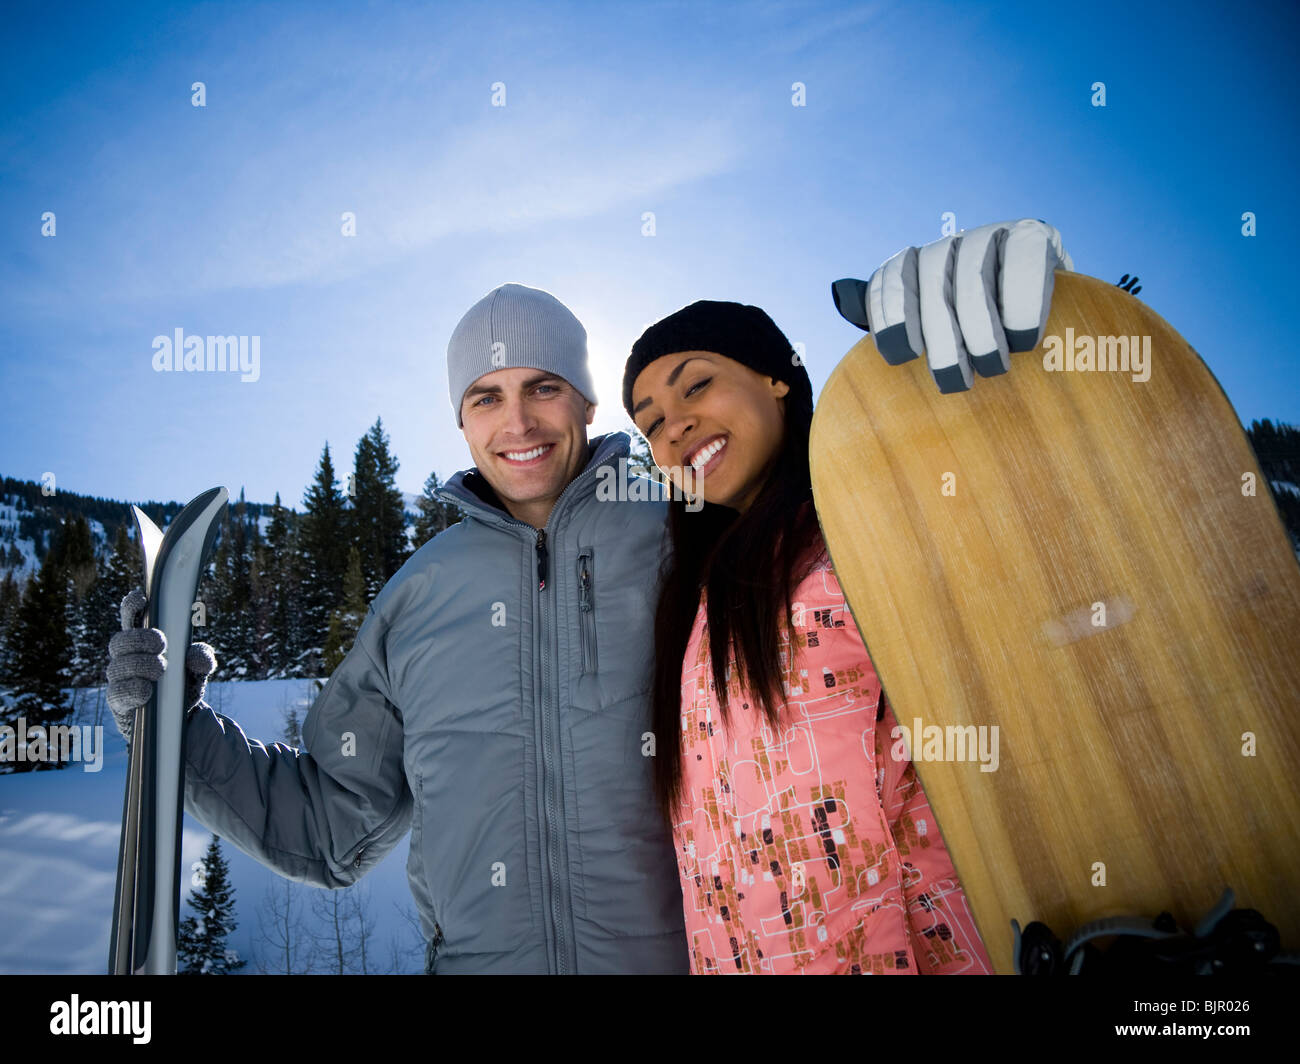 A couple outside in the snow - Stock Image